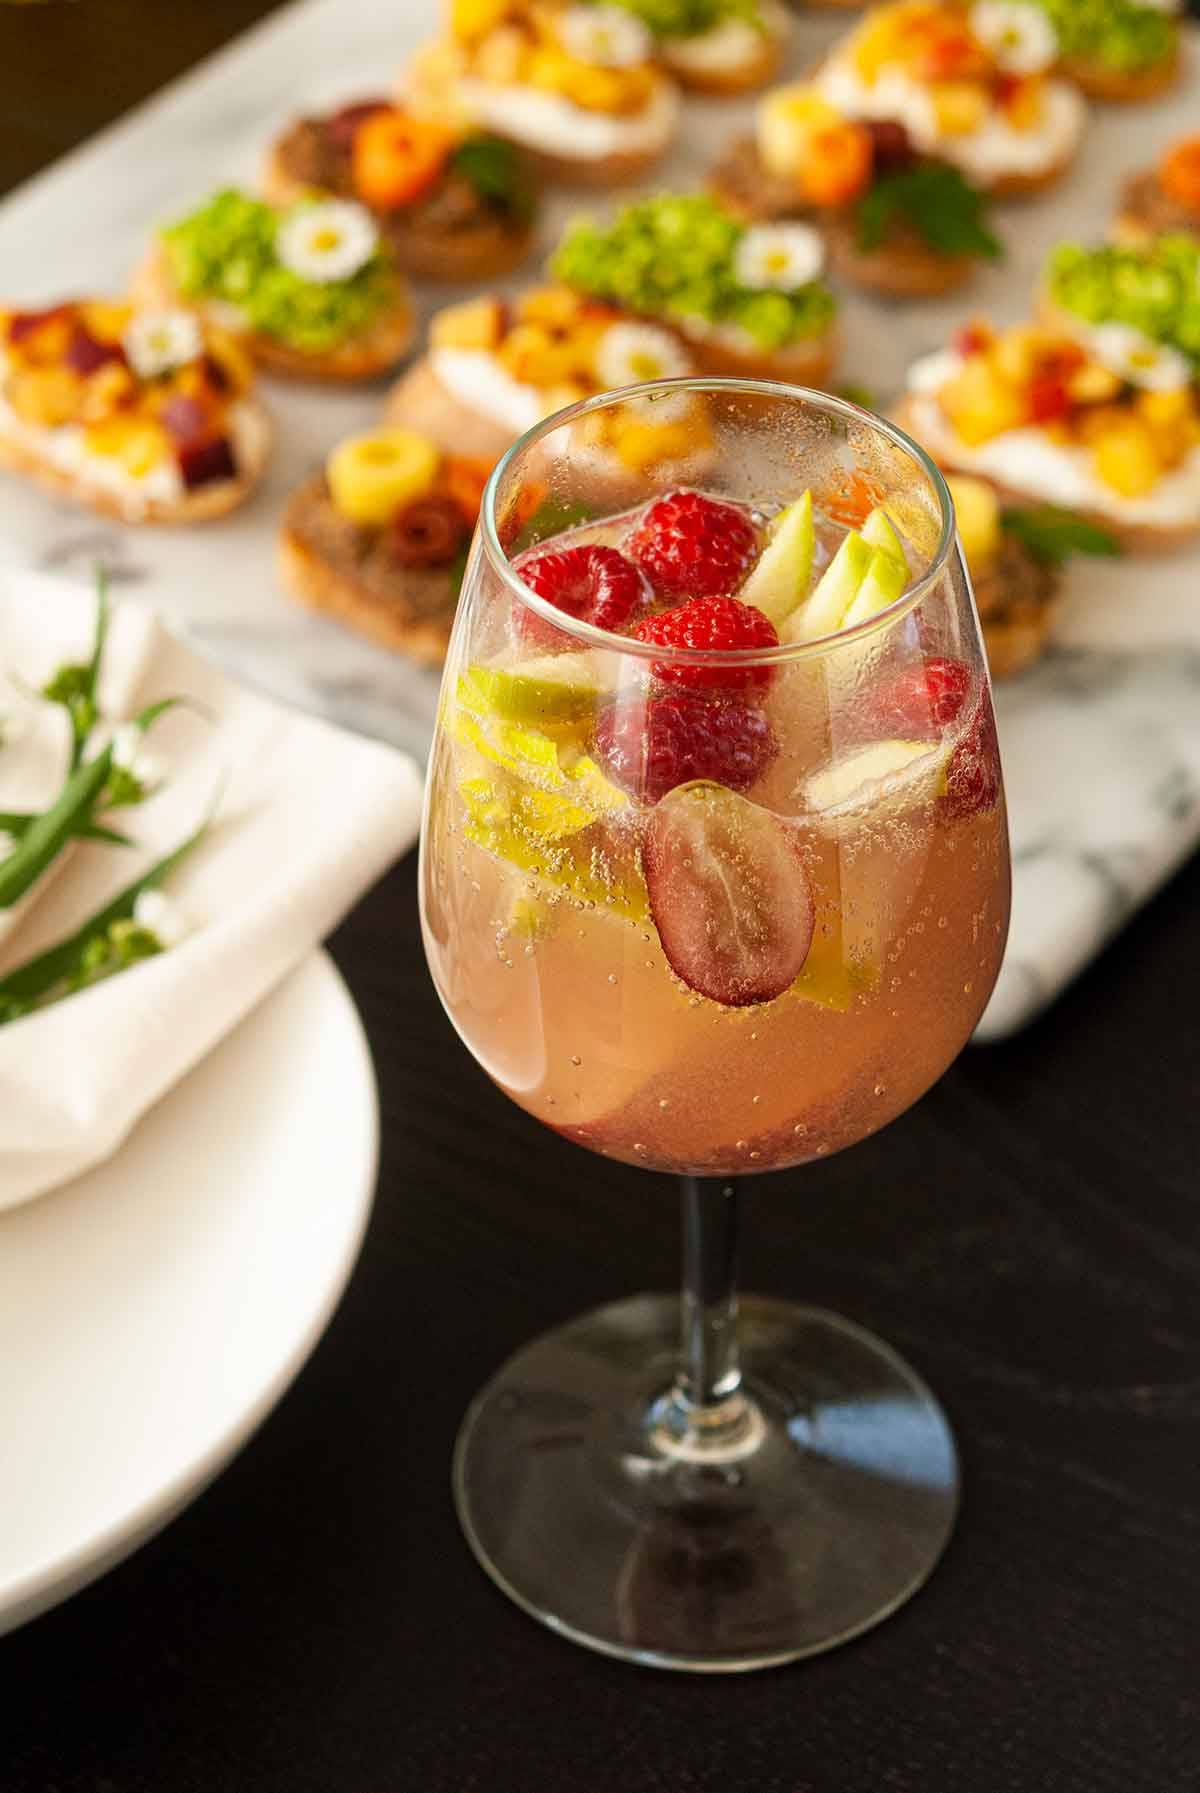 A glass of sake sangria, full of fruit, on a table beside appetizers.